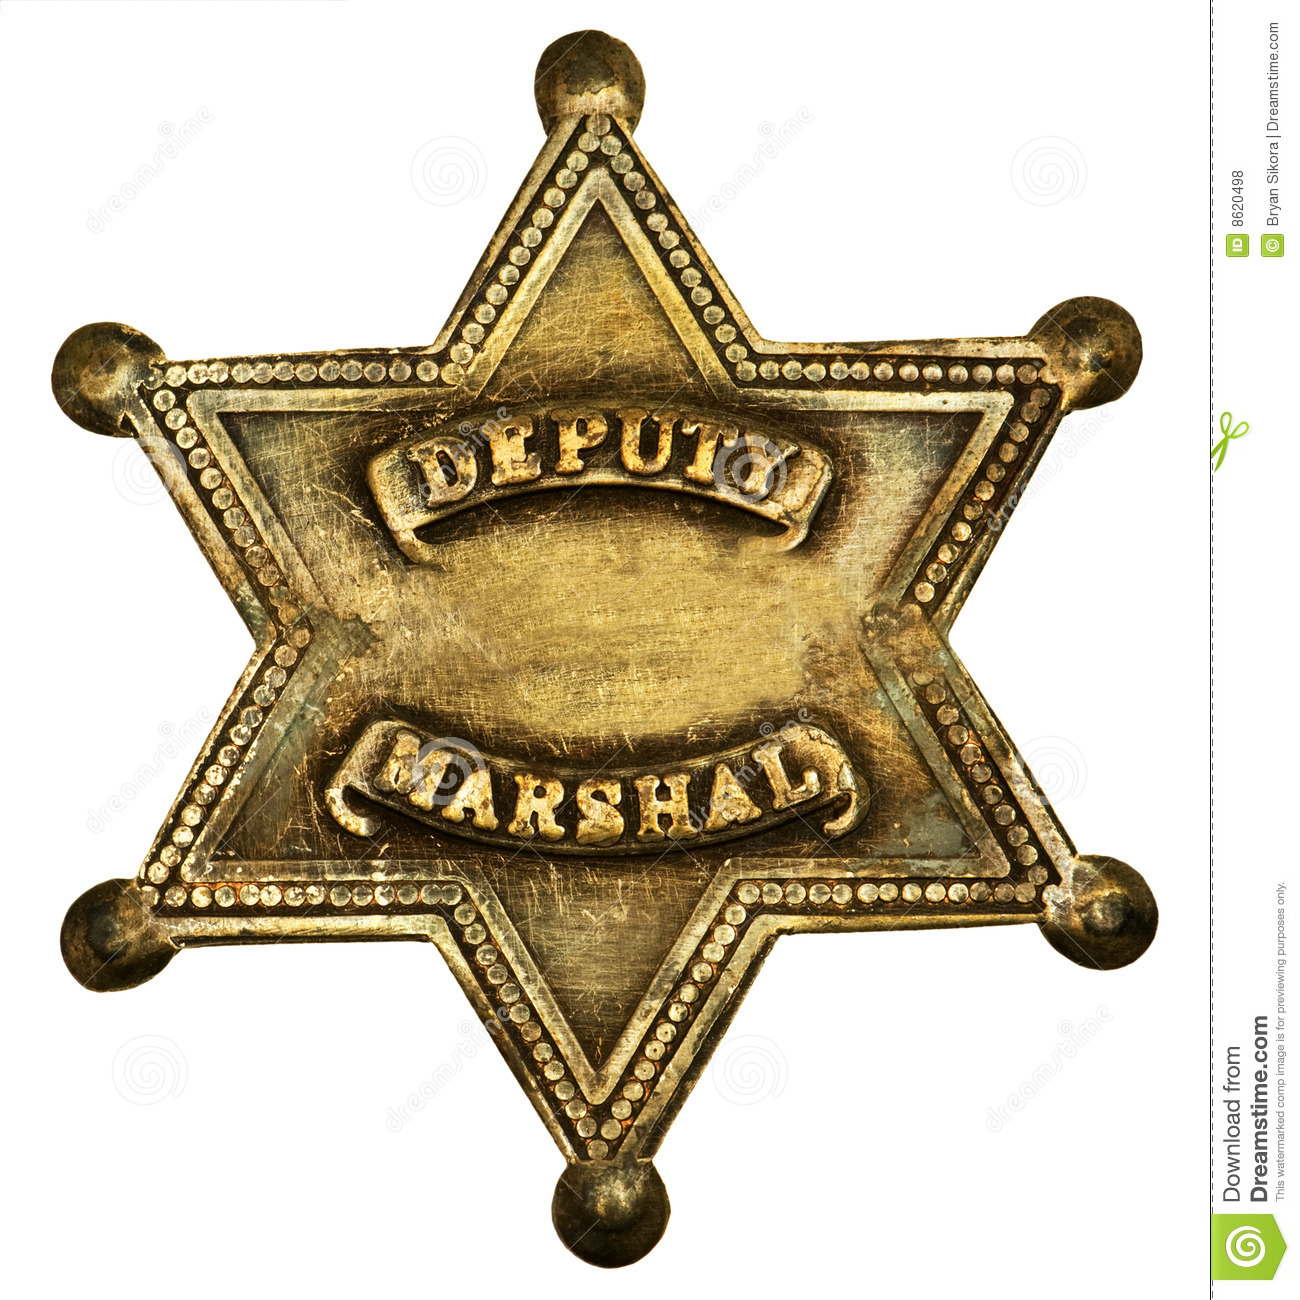 Diputado auténtico Marshall Badge